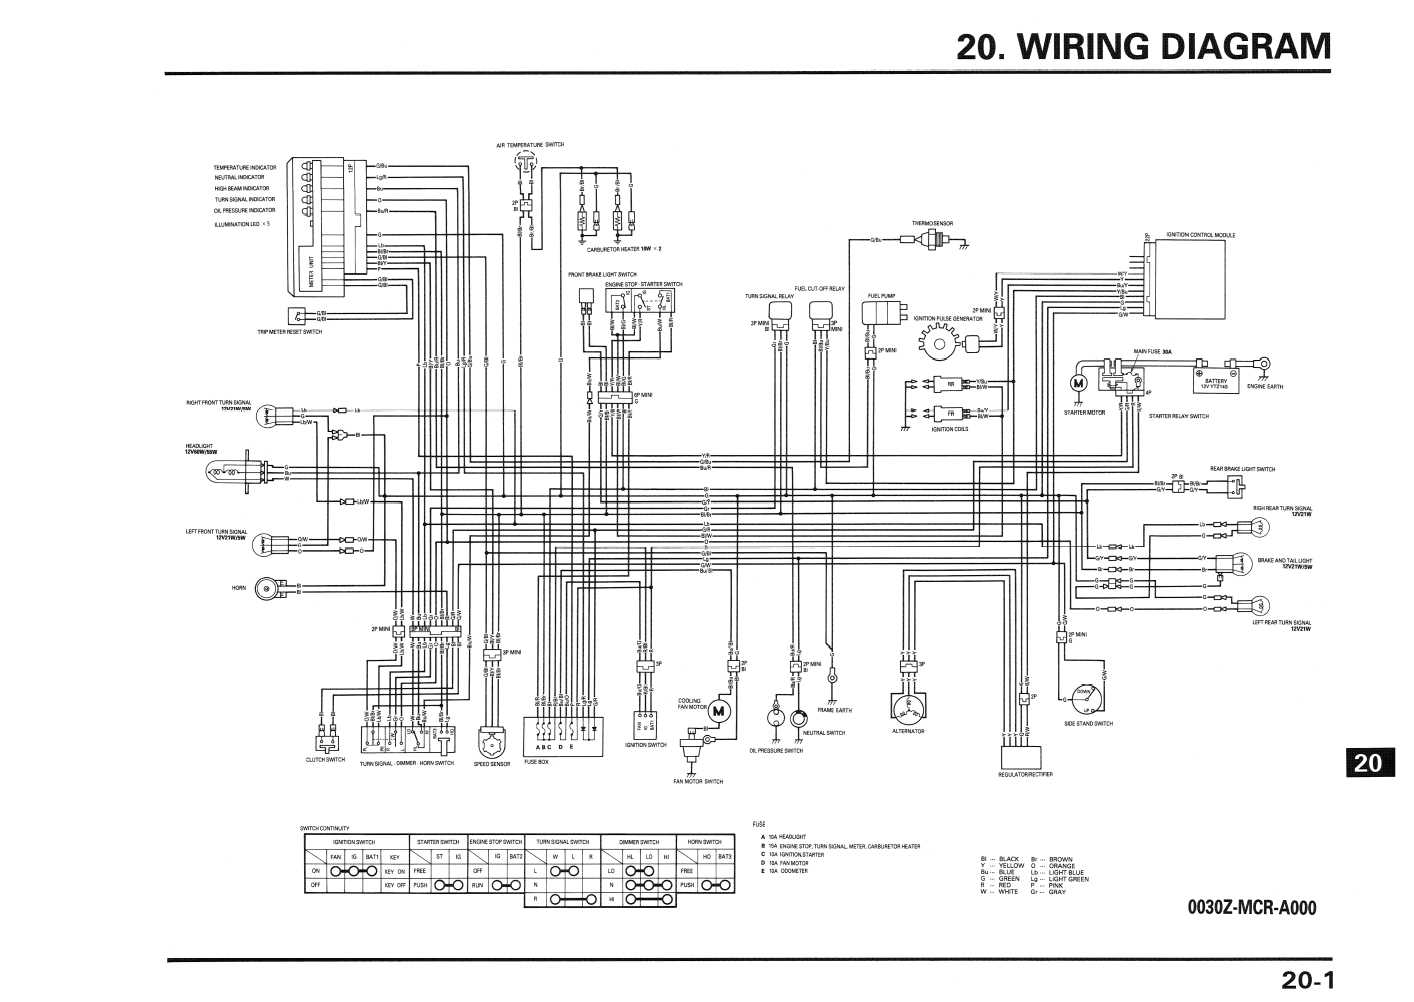 1983 Honda Shadow 750 Wiring Diagram : 36 Wiring Diagram